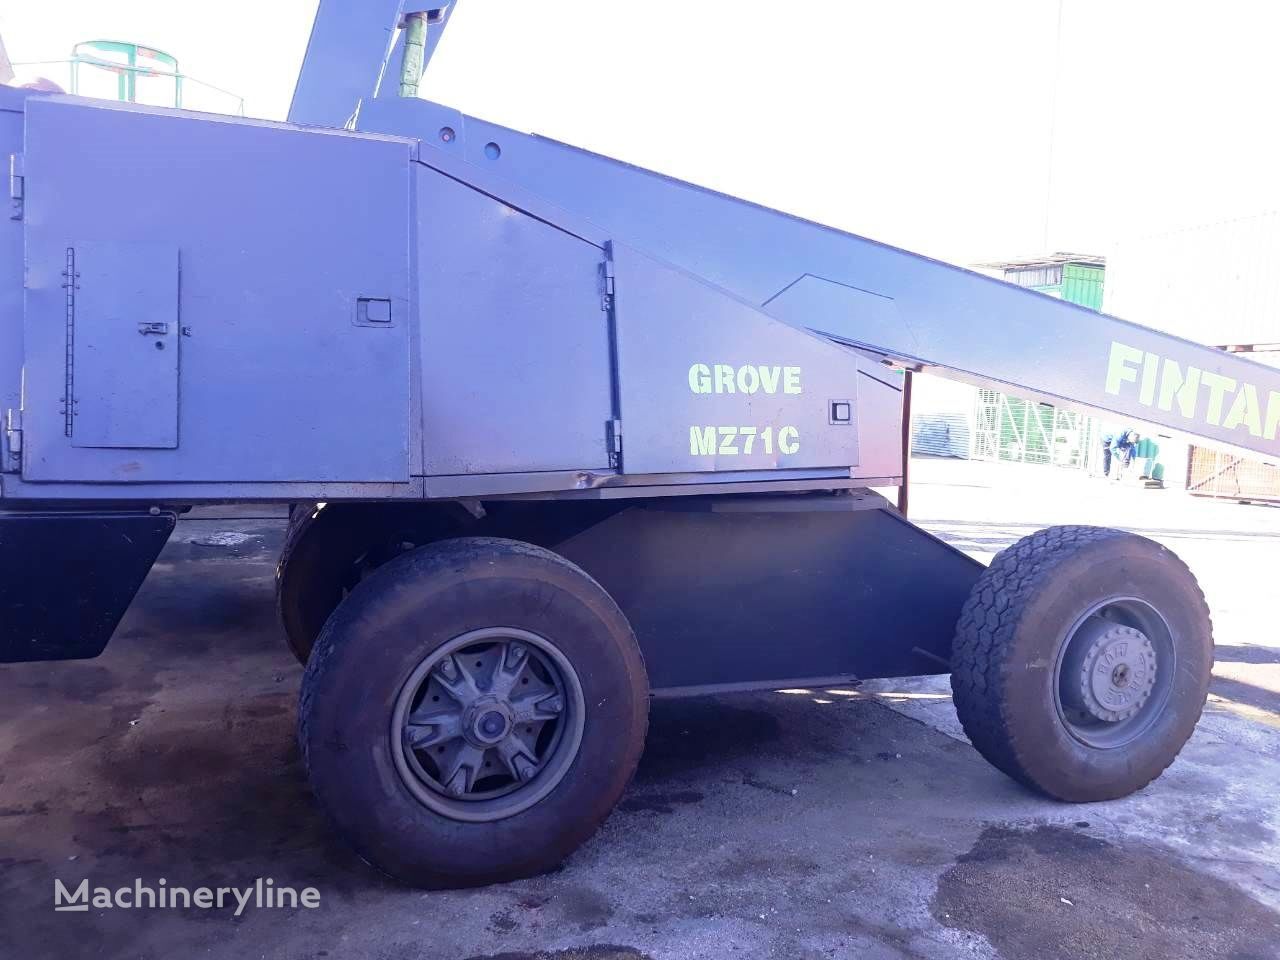 GROVE MZ71C 4WD telescopic boom lift